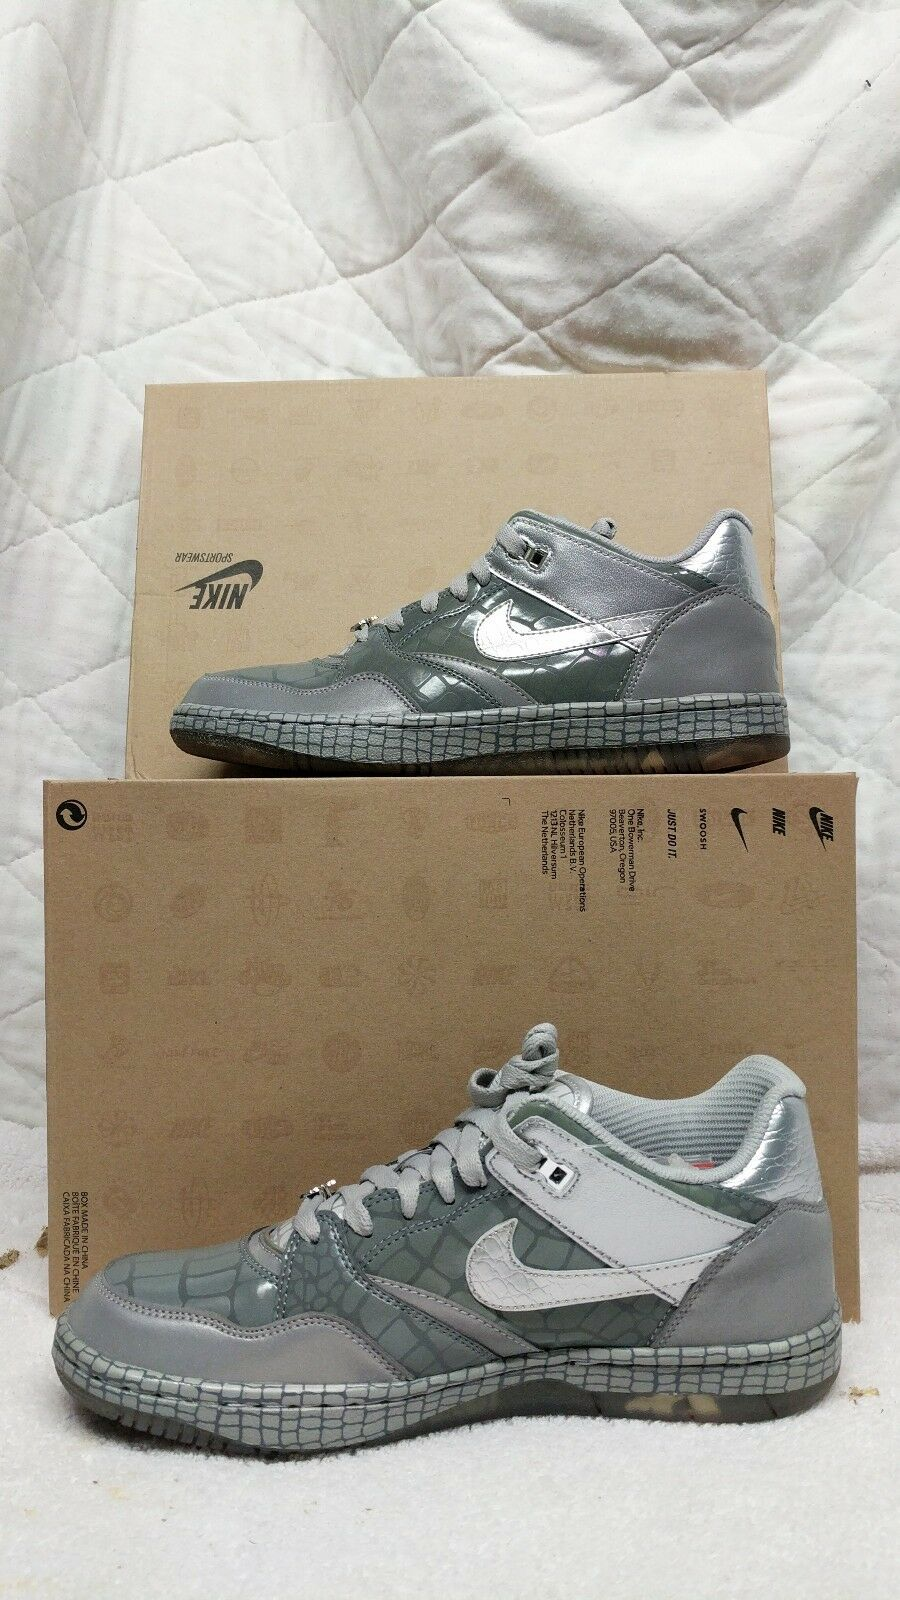 Nike Sky Force 88 Low Mighty Crown LTR QS  Sz. 9 Reflective Air 503767-001 1 Casual wild